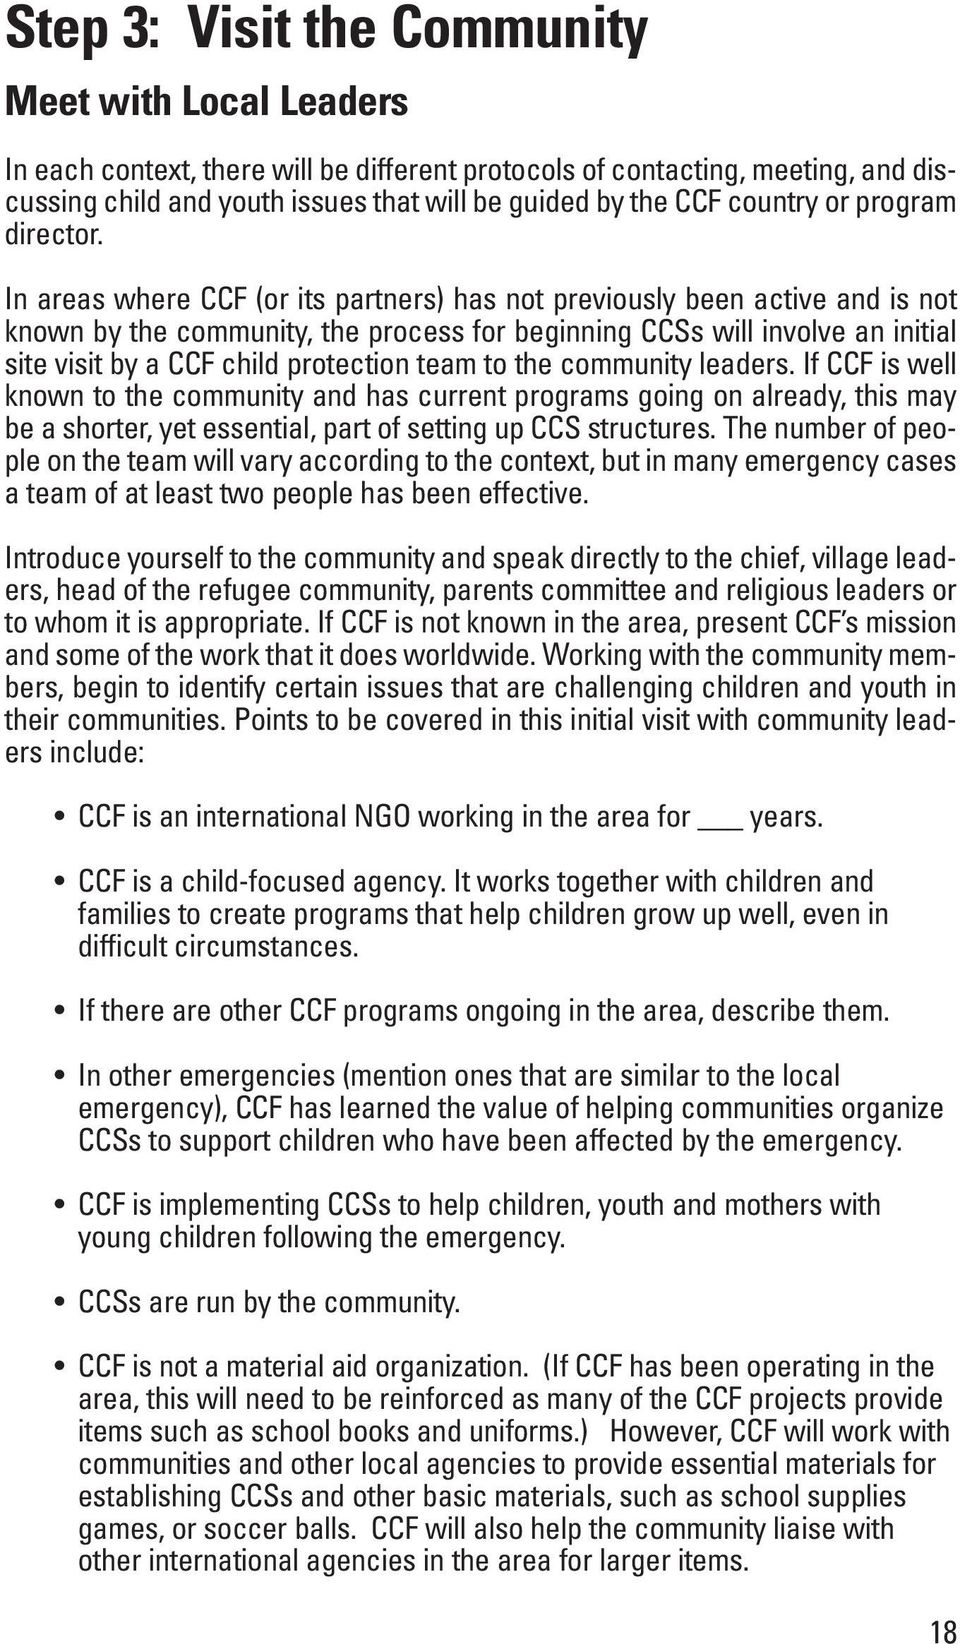 In areas where CCF (or its partners) has not previously been active and is not known by the community, the process for beginning CCSs will involve an initial site visit by a CCF child protection team